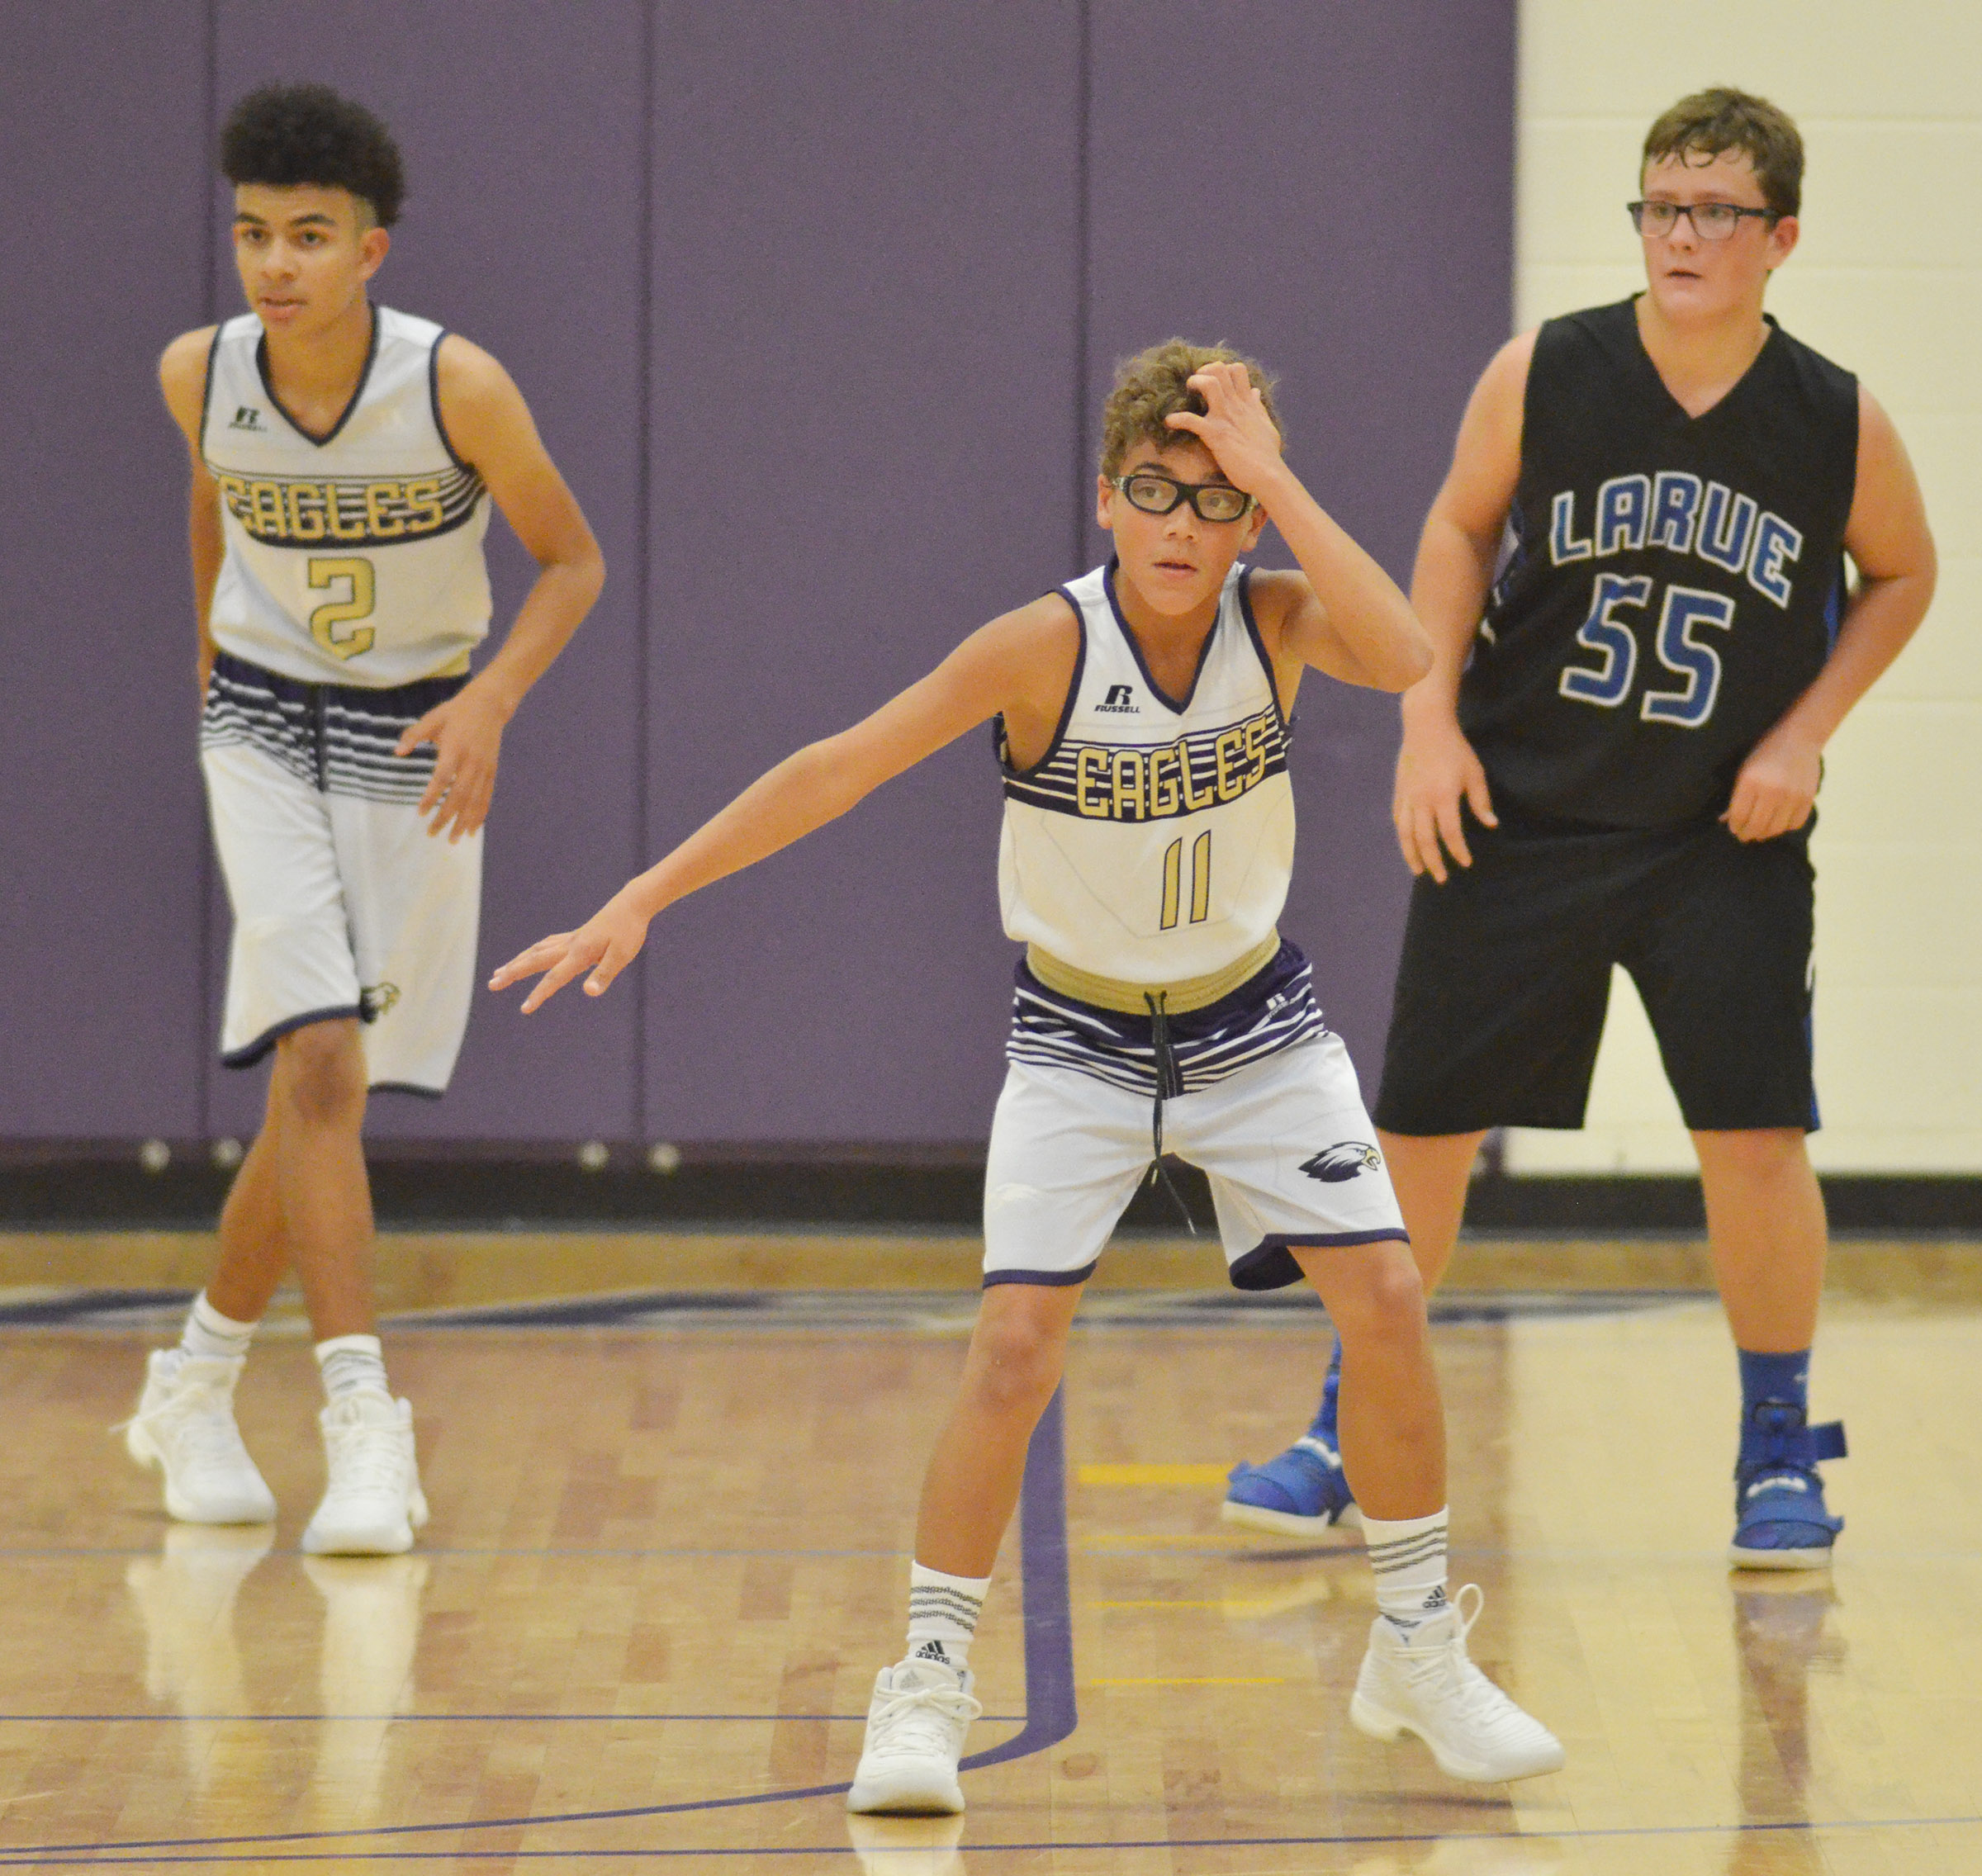 CMS eighth-grader Logan Phillips plays defense.